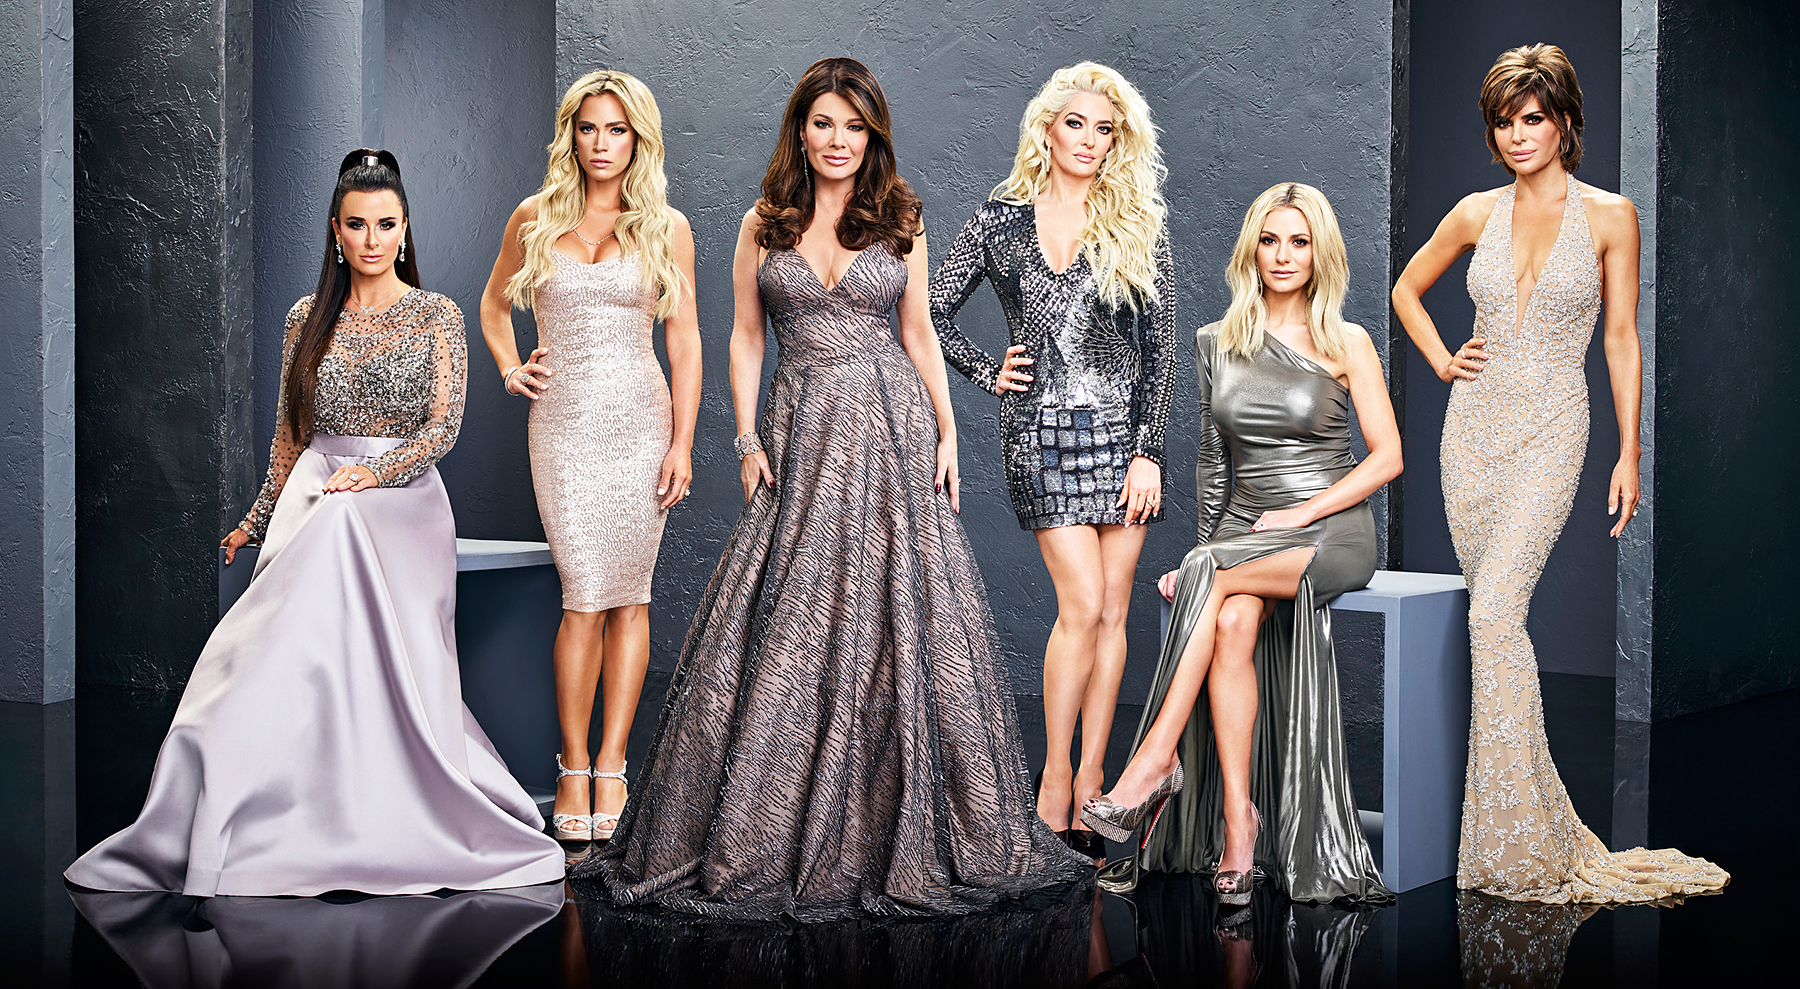 Kyle Richards, Teddi Mellencamp Arroyave, Lisa Vanderpump, Erika Girardi, Dorit Kemsley, Lisa Rinna on season 8 of The Real Housewives of Beverly Hills